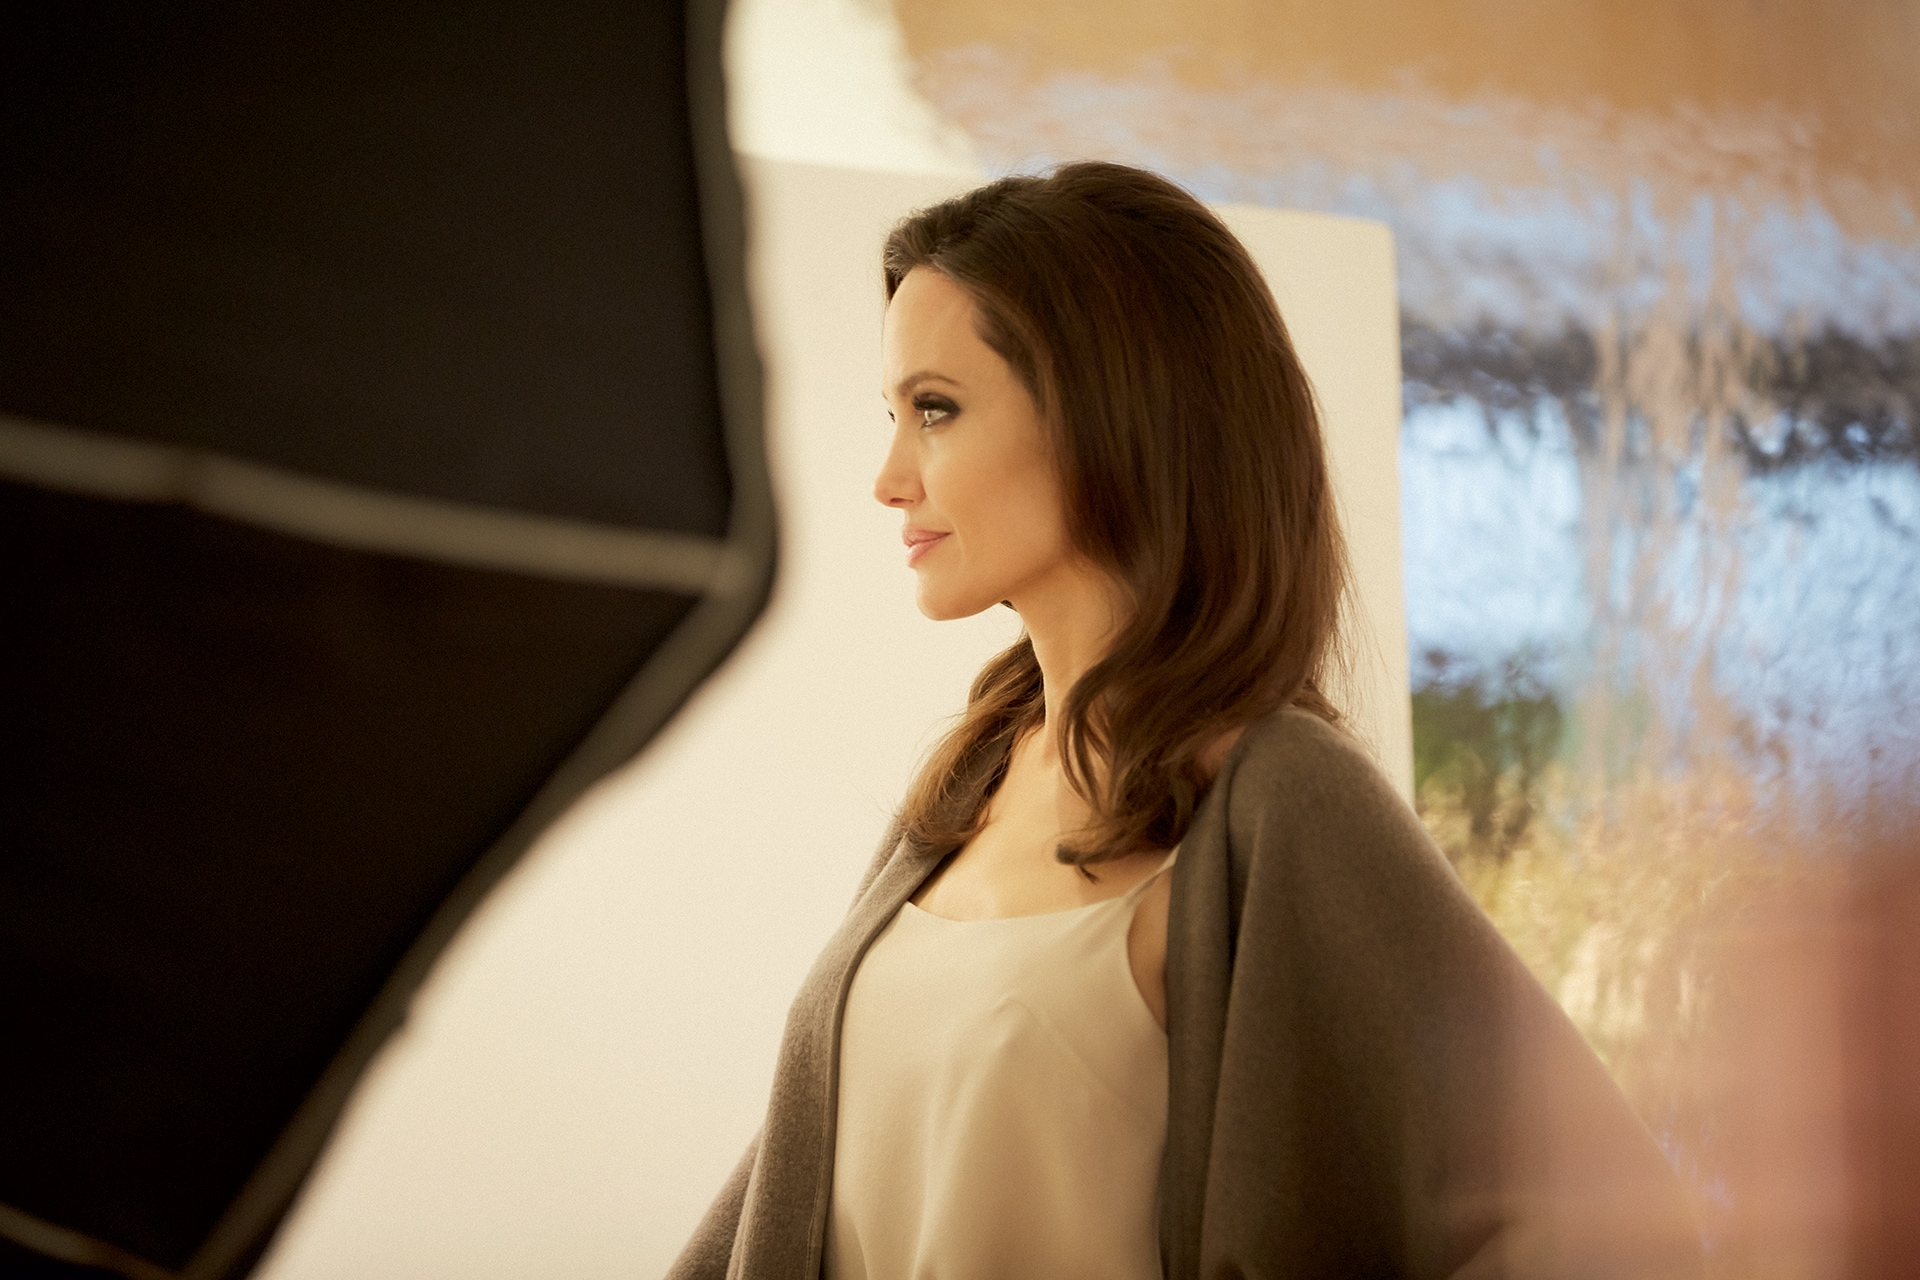 Angelina Jolie on set for Guerlain. Image credit: Benjamin de Lapparent